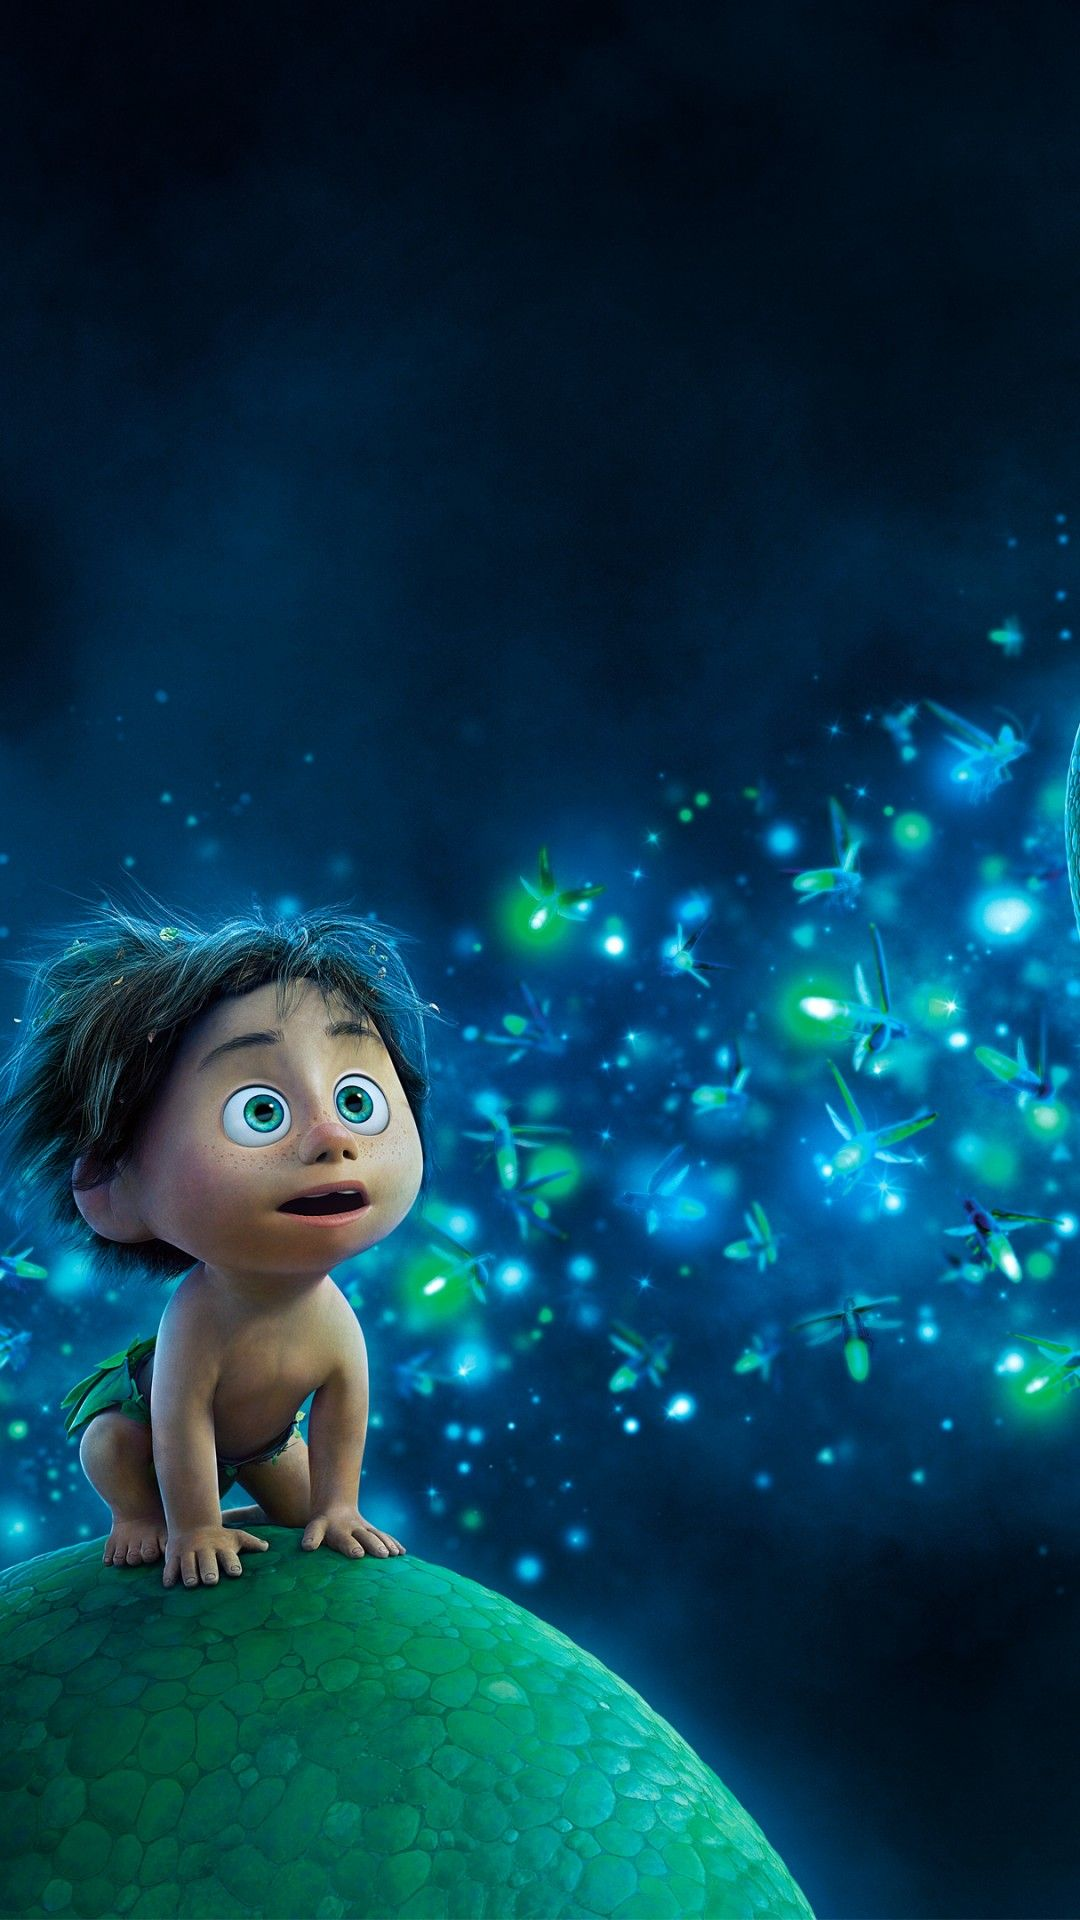 1080x2160 Abominable Yeti And Boy Animation Movie Wallpaper Disney Wallpaper Movie Wallpapers Cute Disney Wallpaper